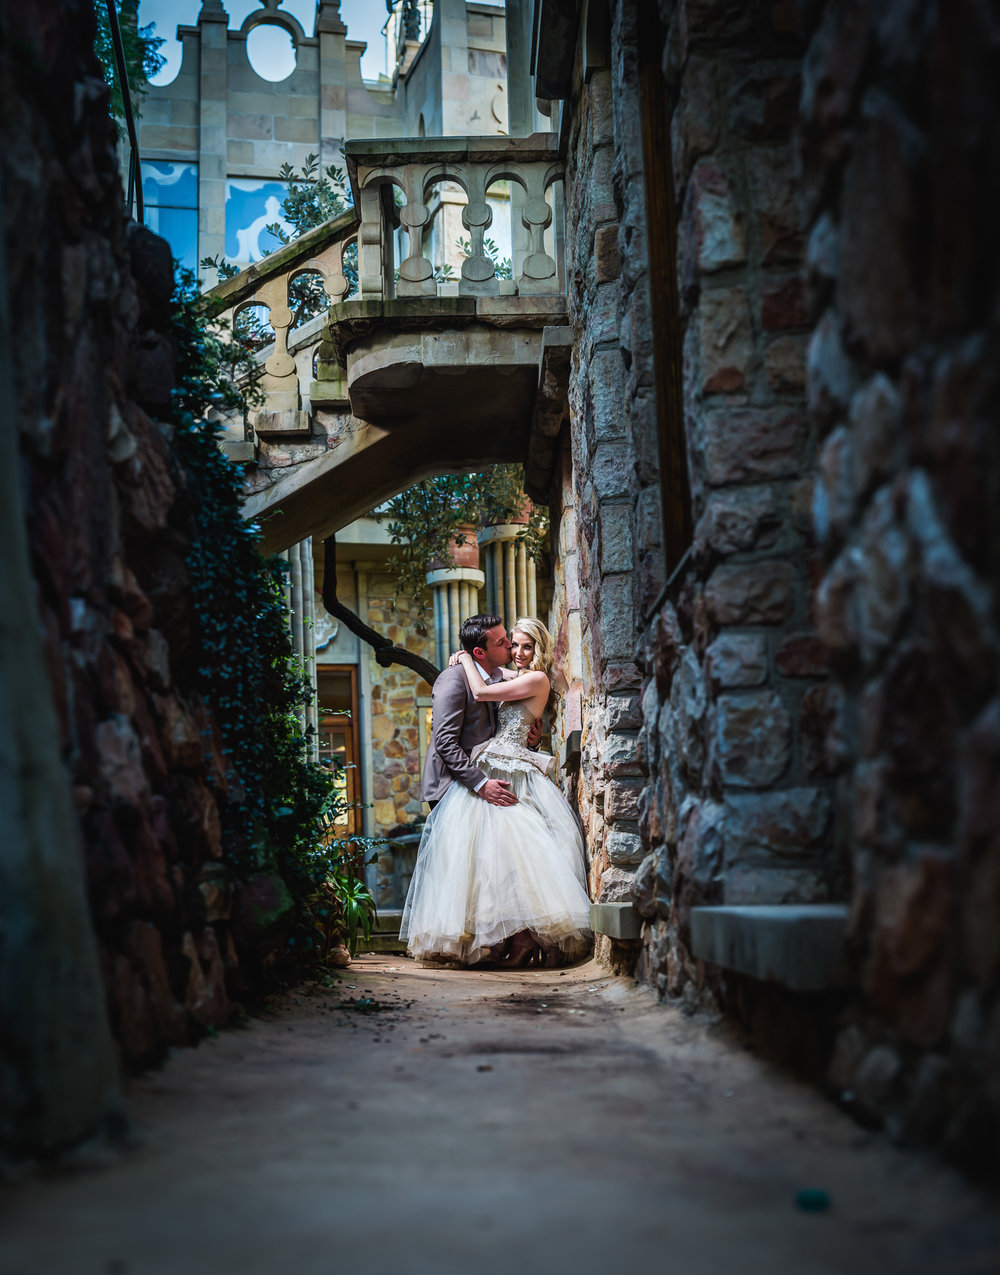 George and Charlene - Shepstone Gardens - Sneak Peak (37 of 49).jpg